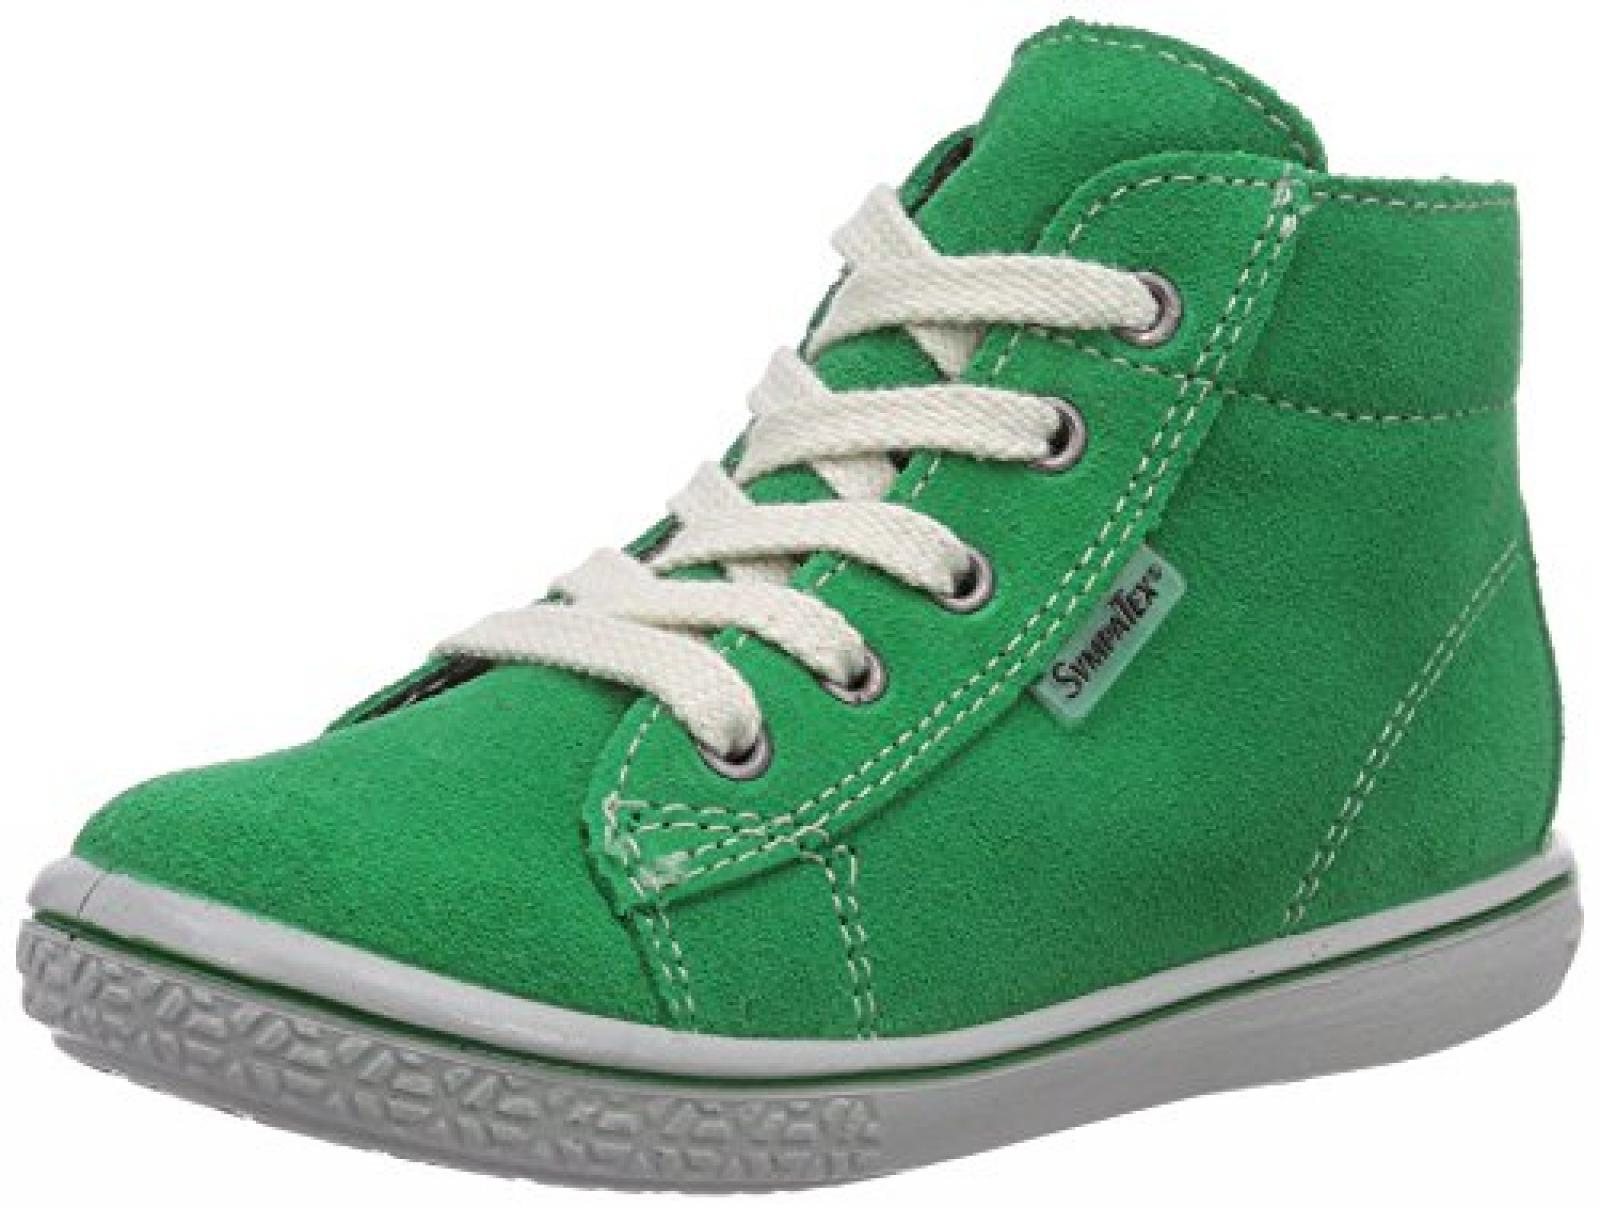 Ricosta Zayni Unisex-Kinder Hohe Sneakers